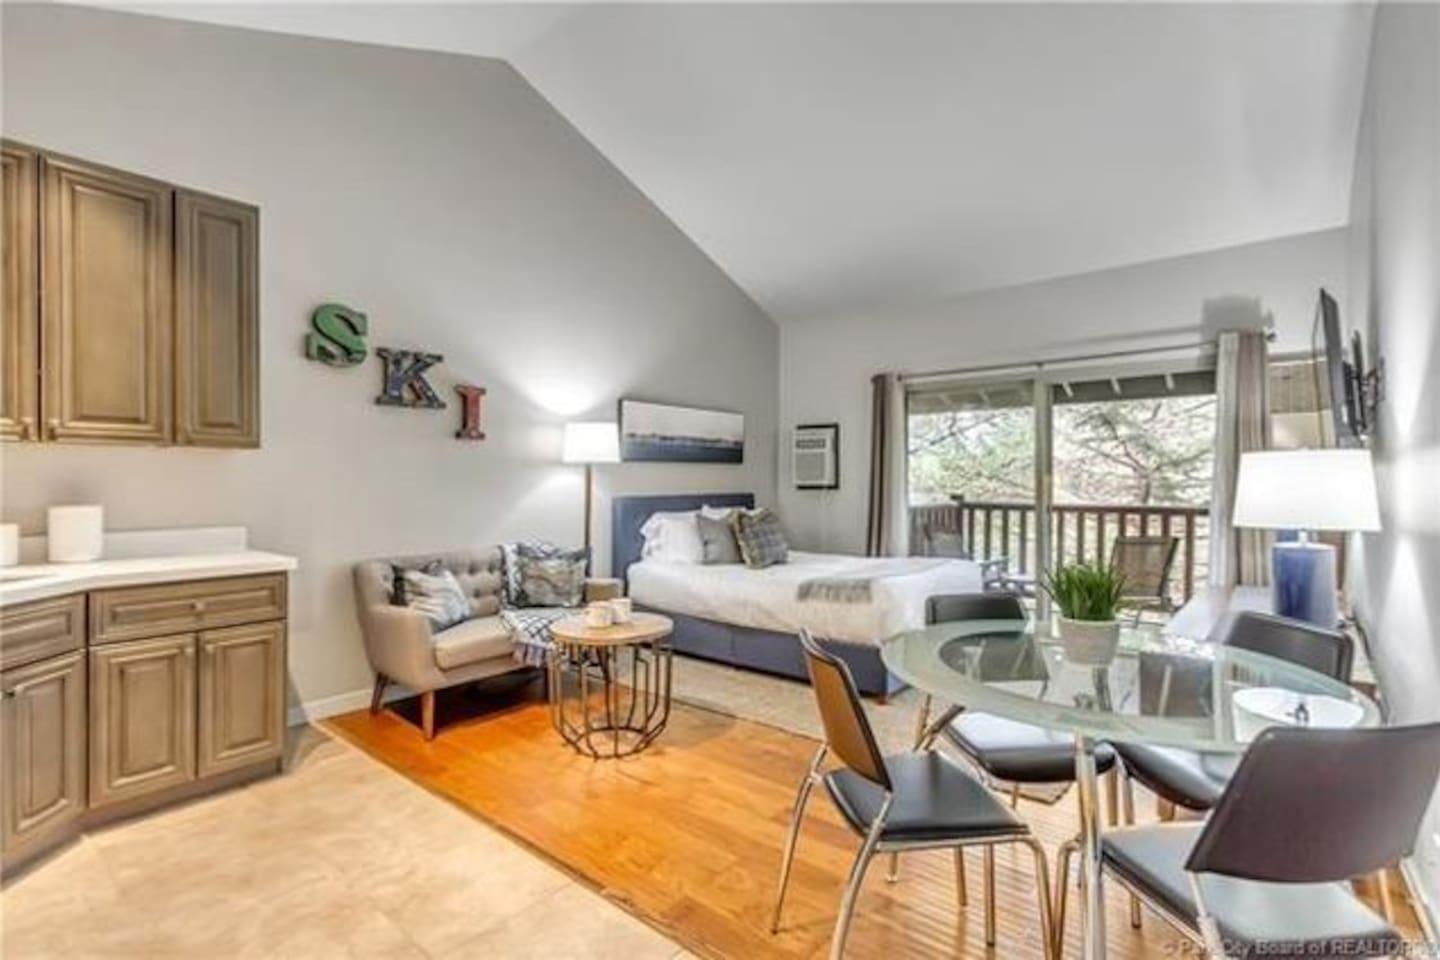 Clean, comfortable studio condo with a large vaulted ceiling.